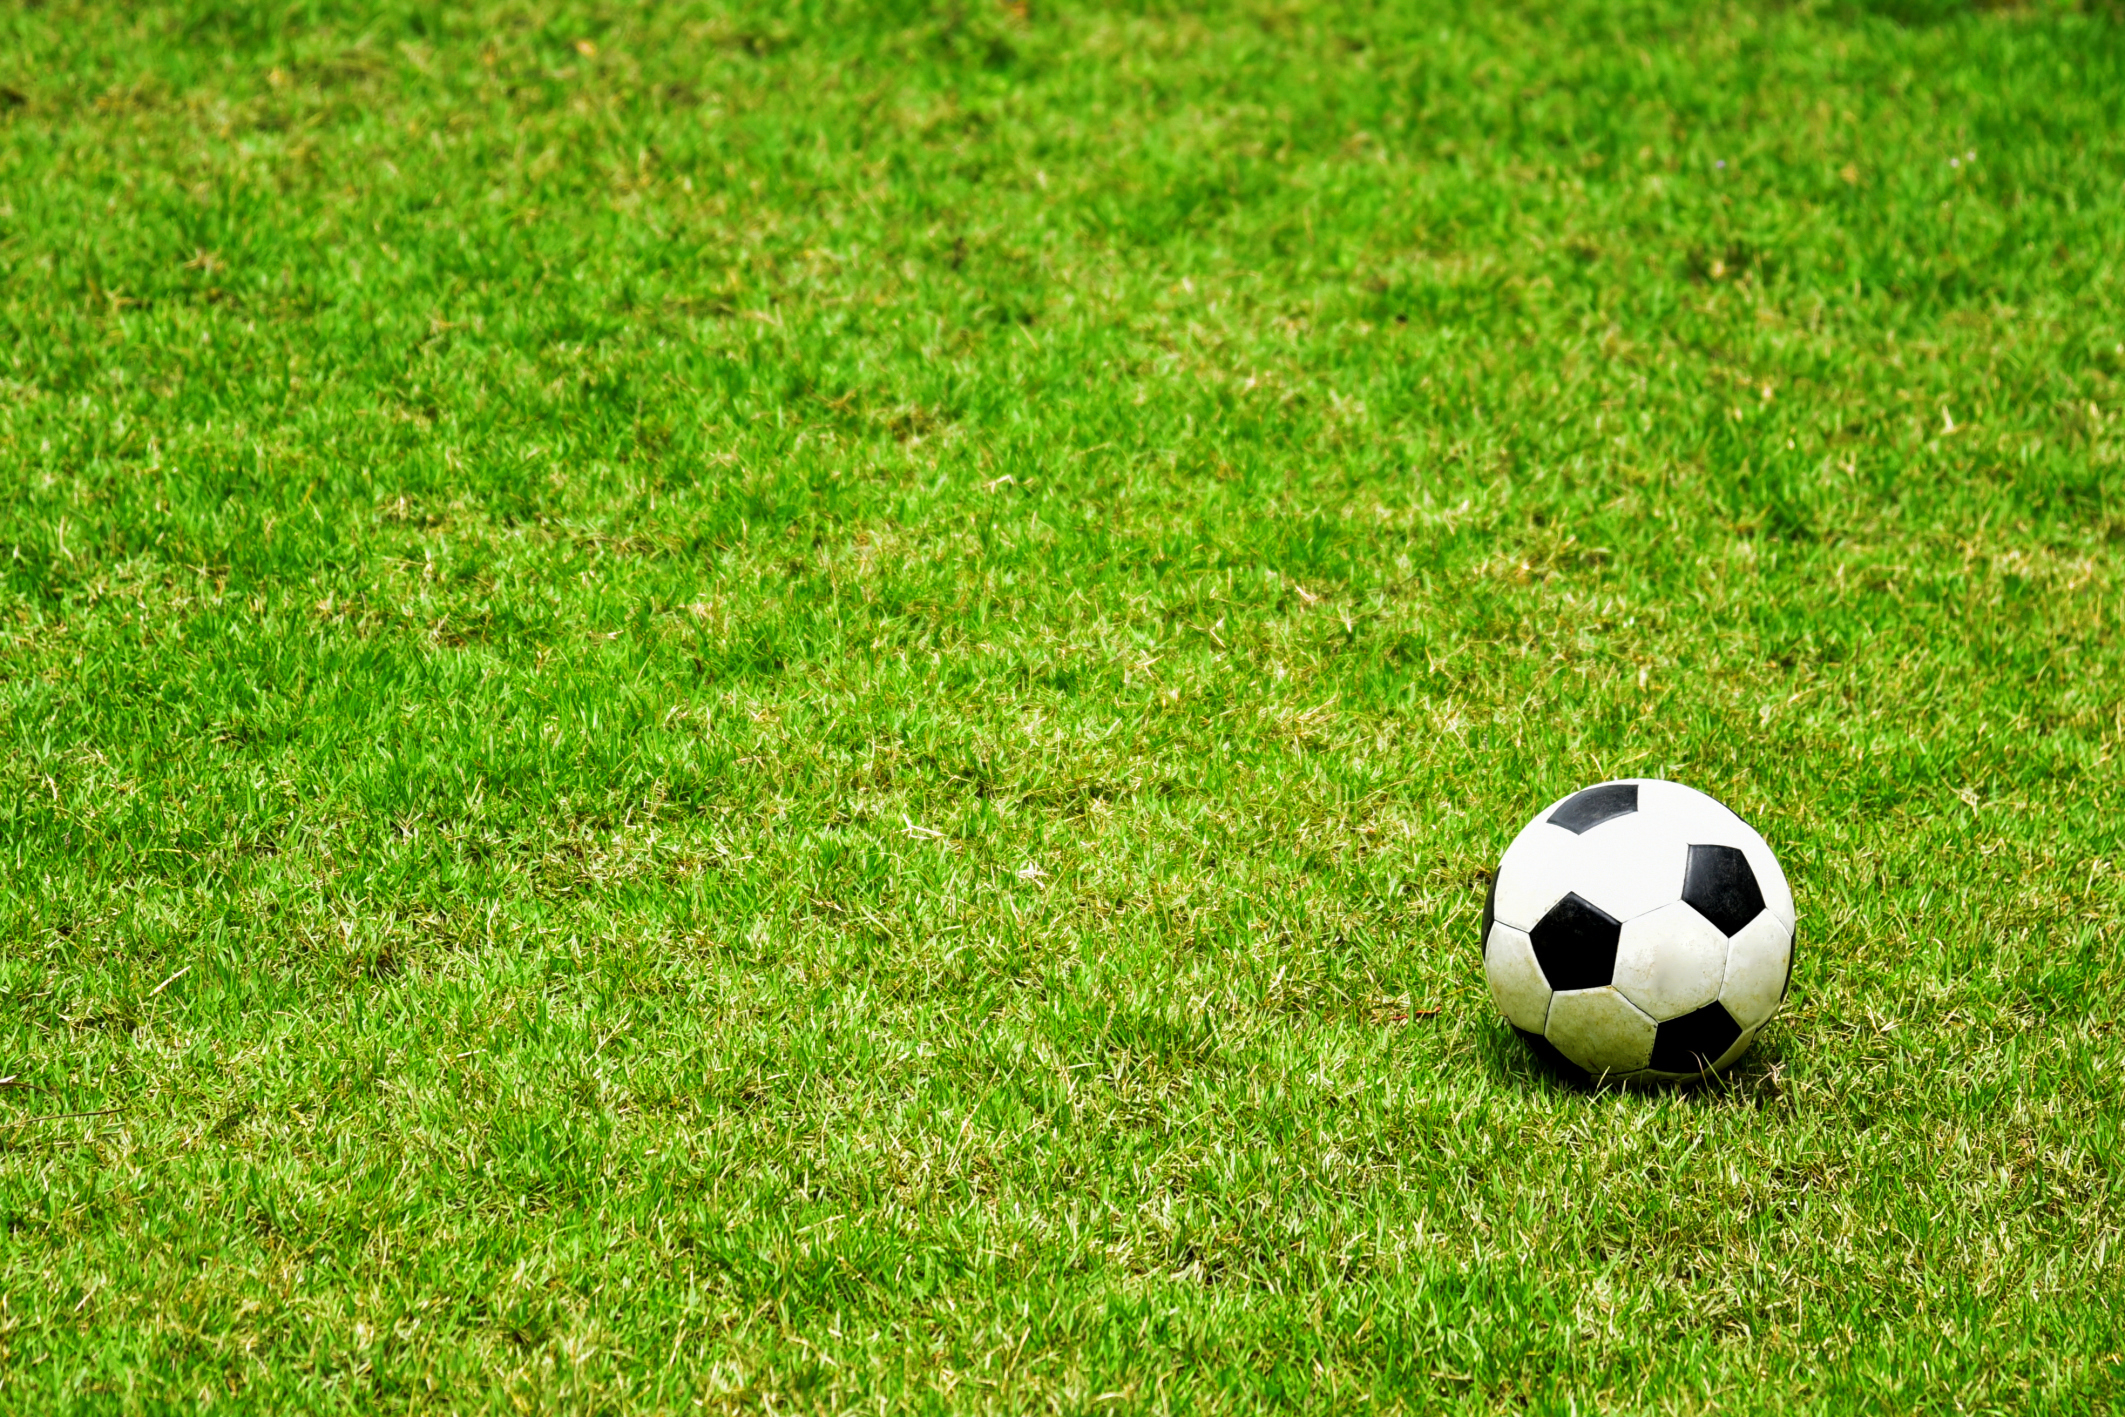 High Angle View Of Soccer Ball On Grassy Field